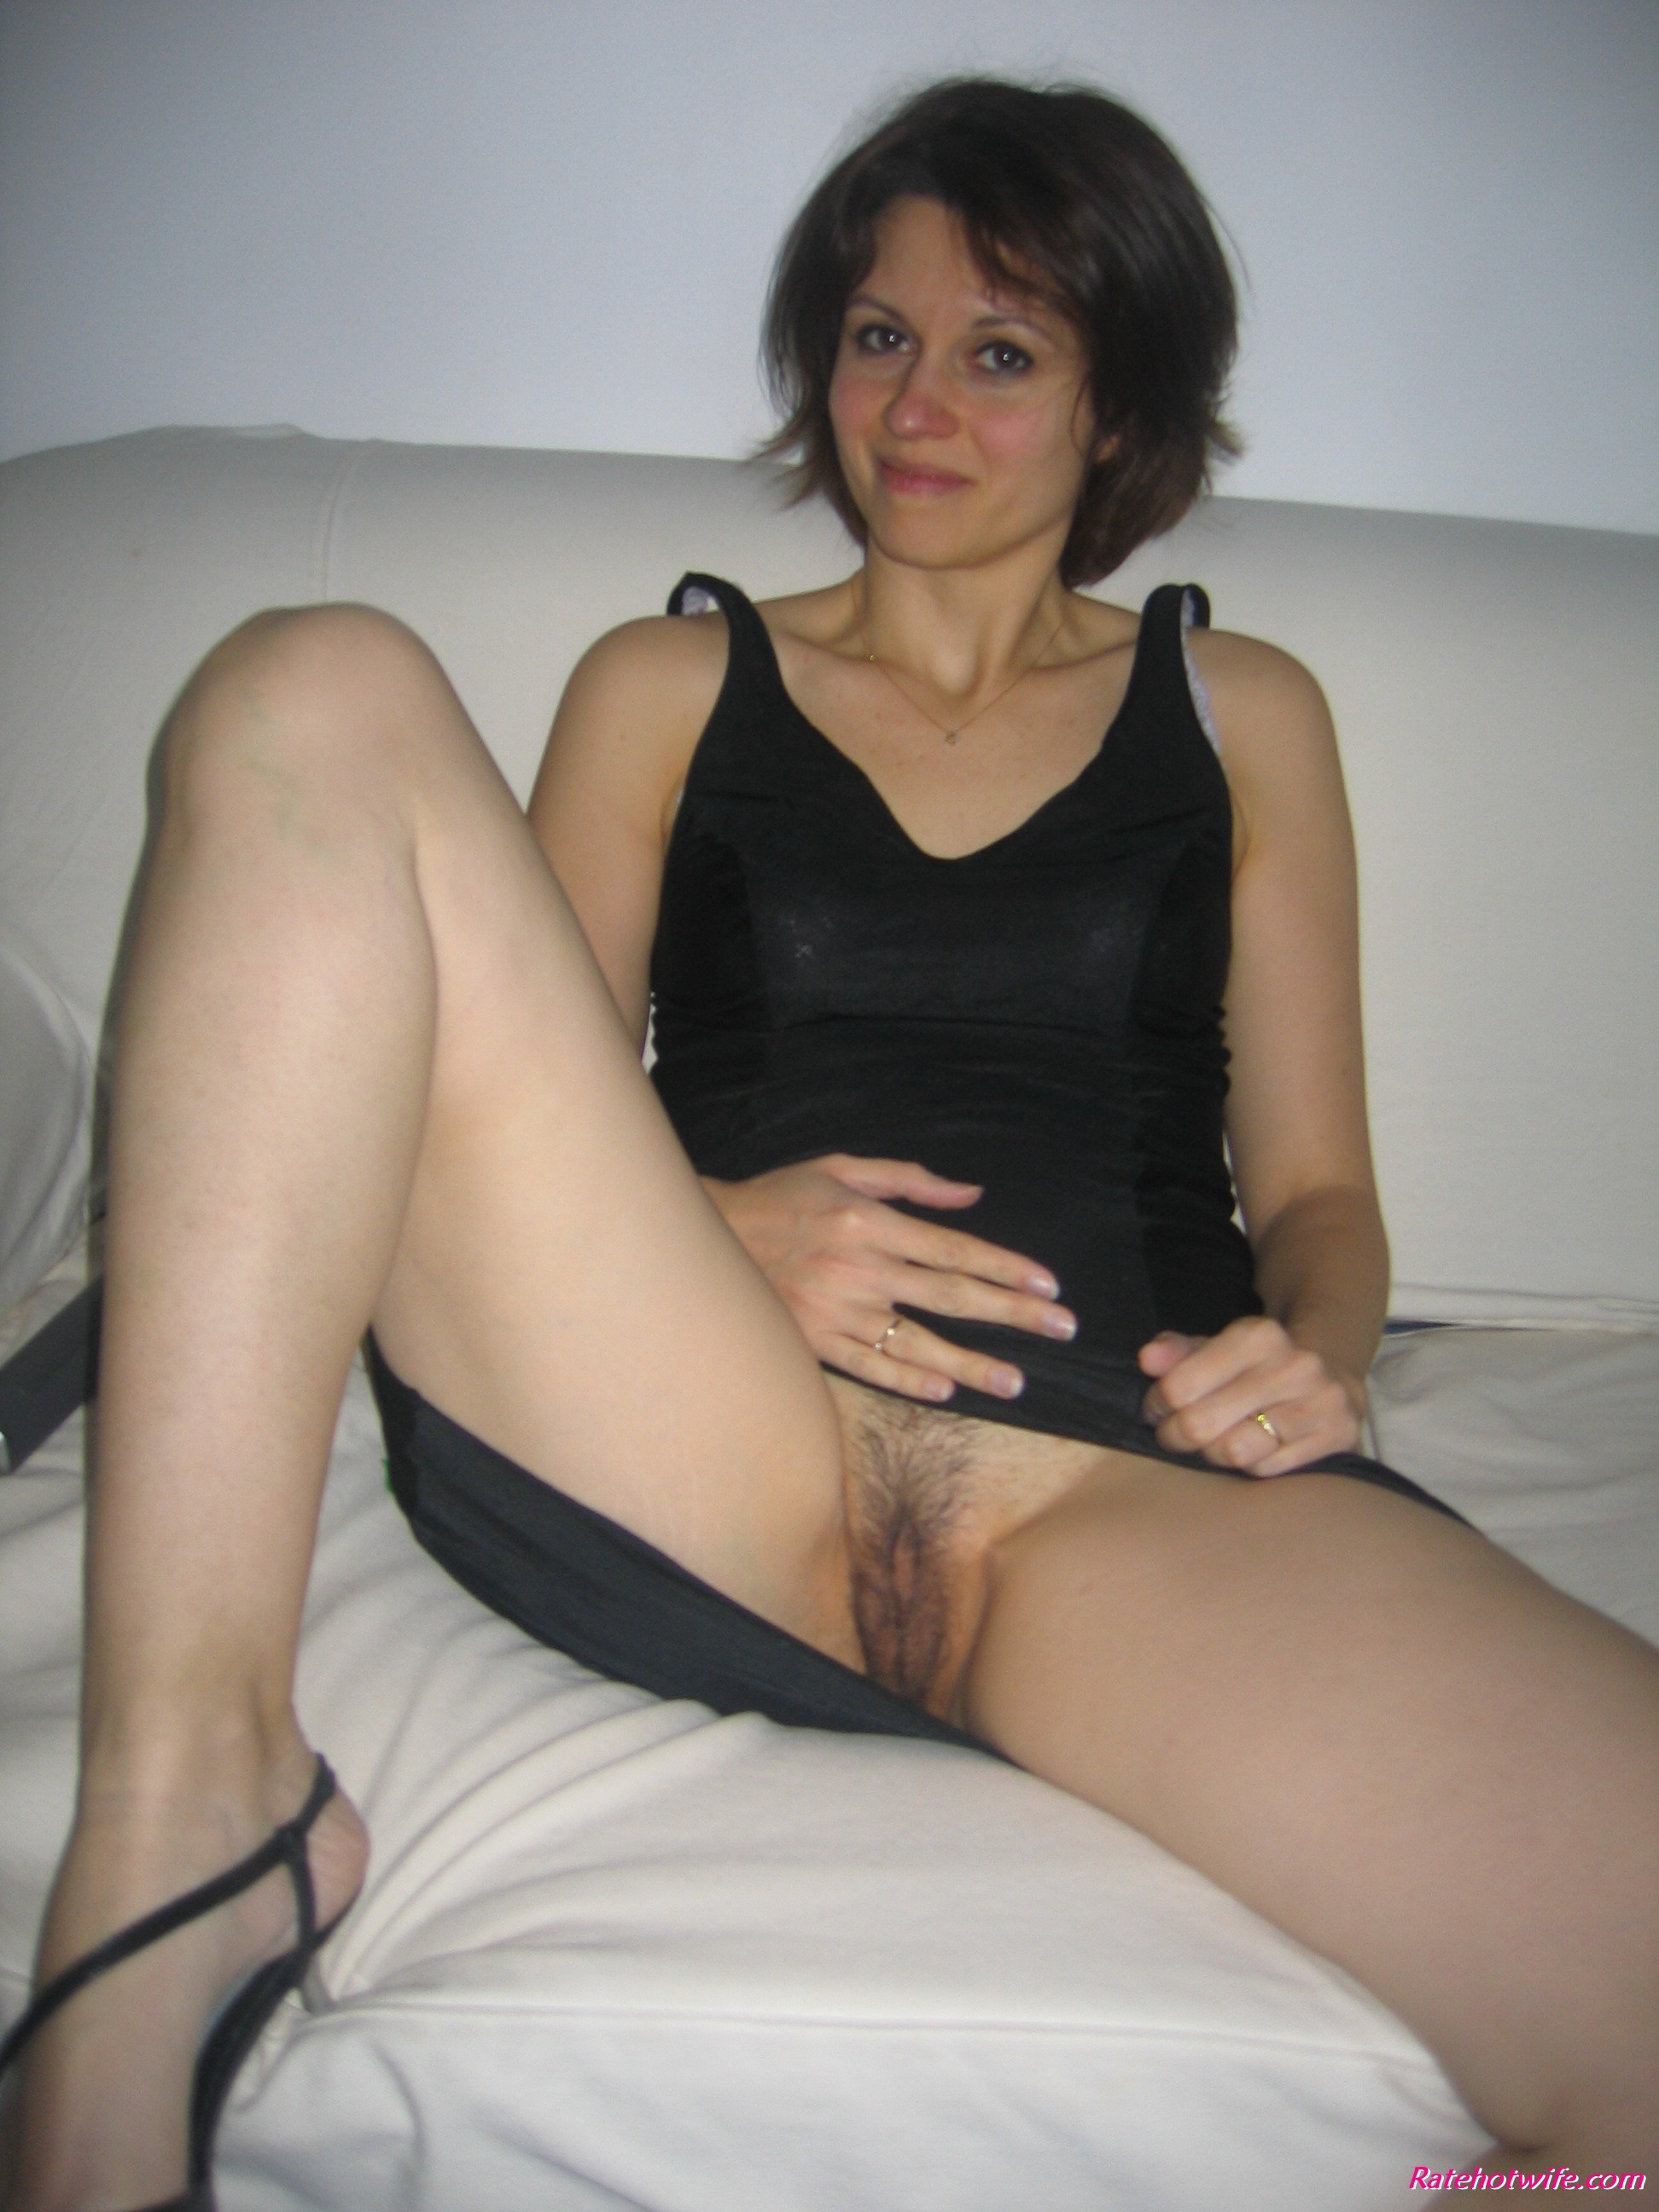 Pics of horny wife